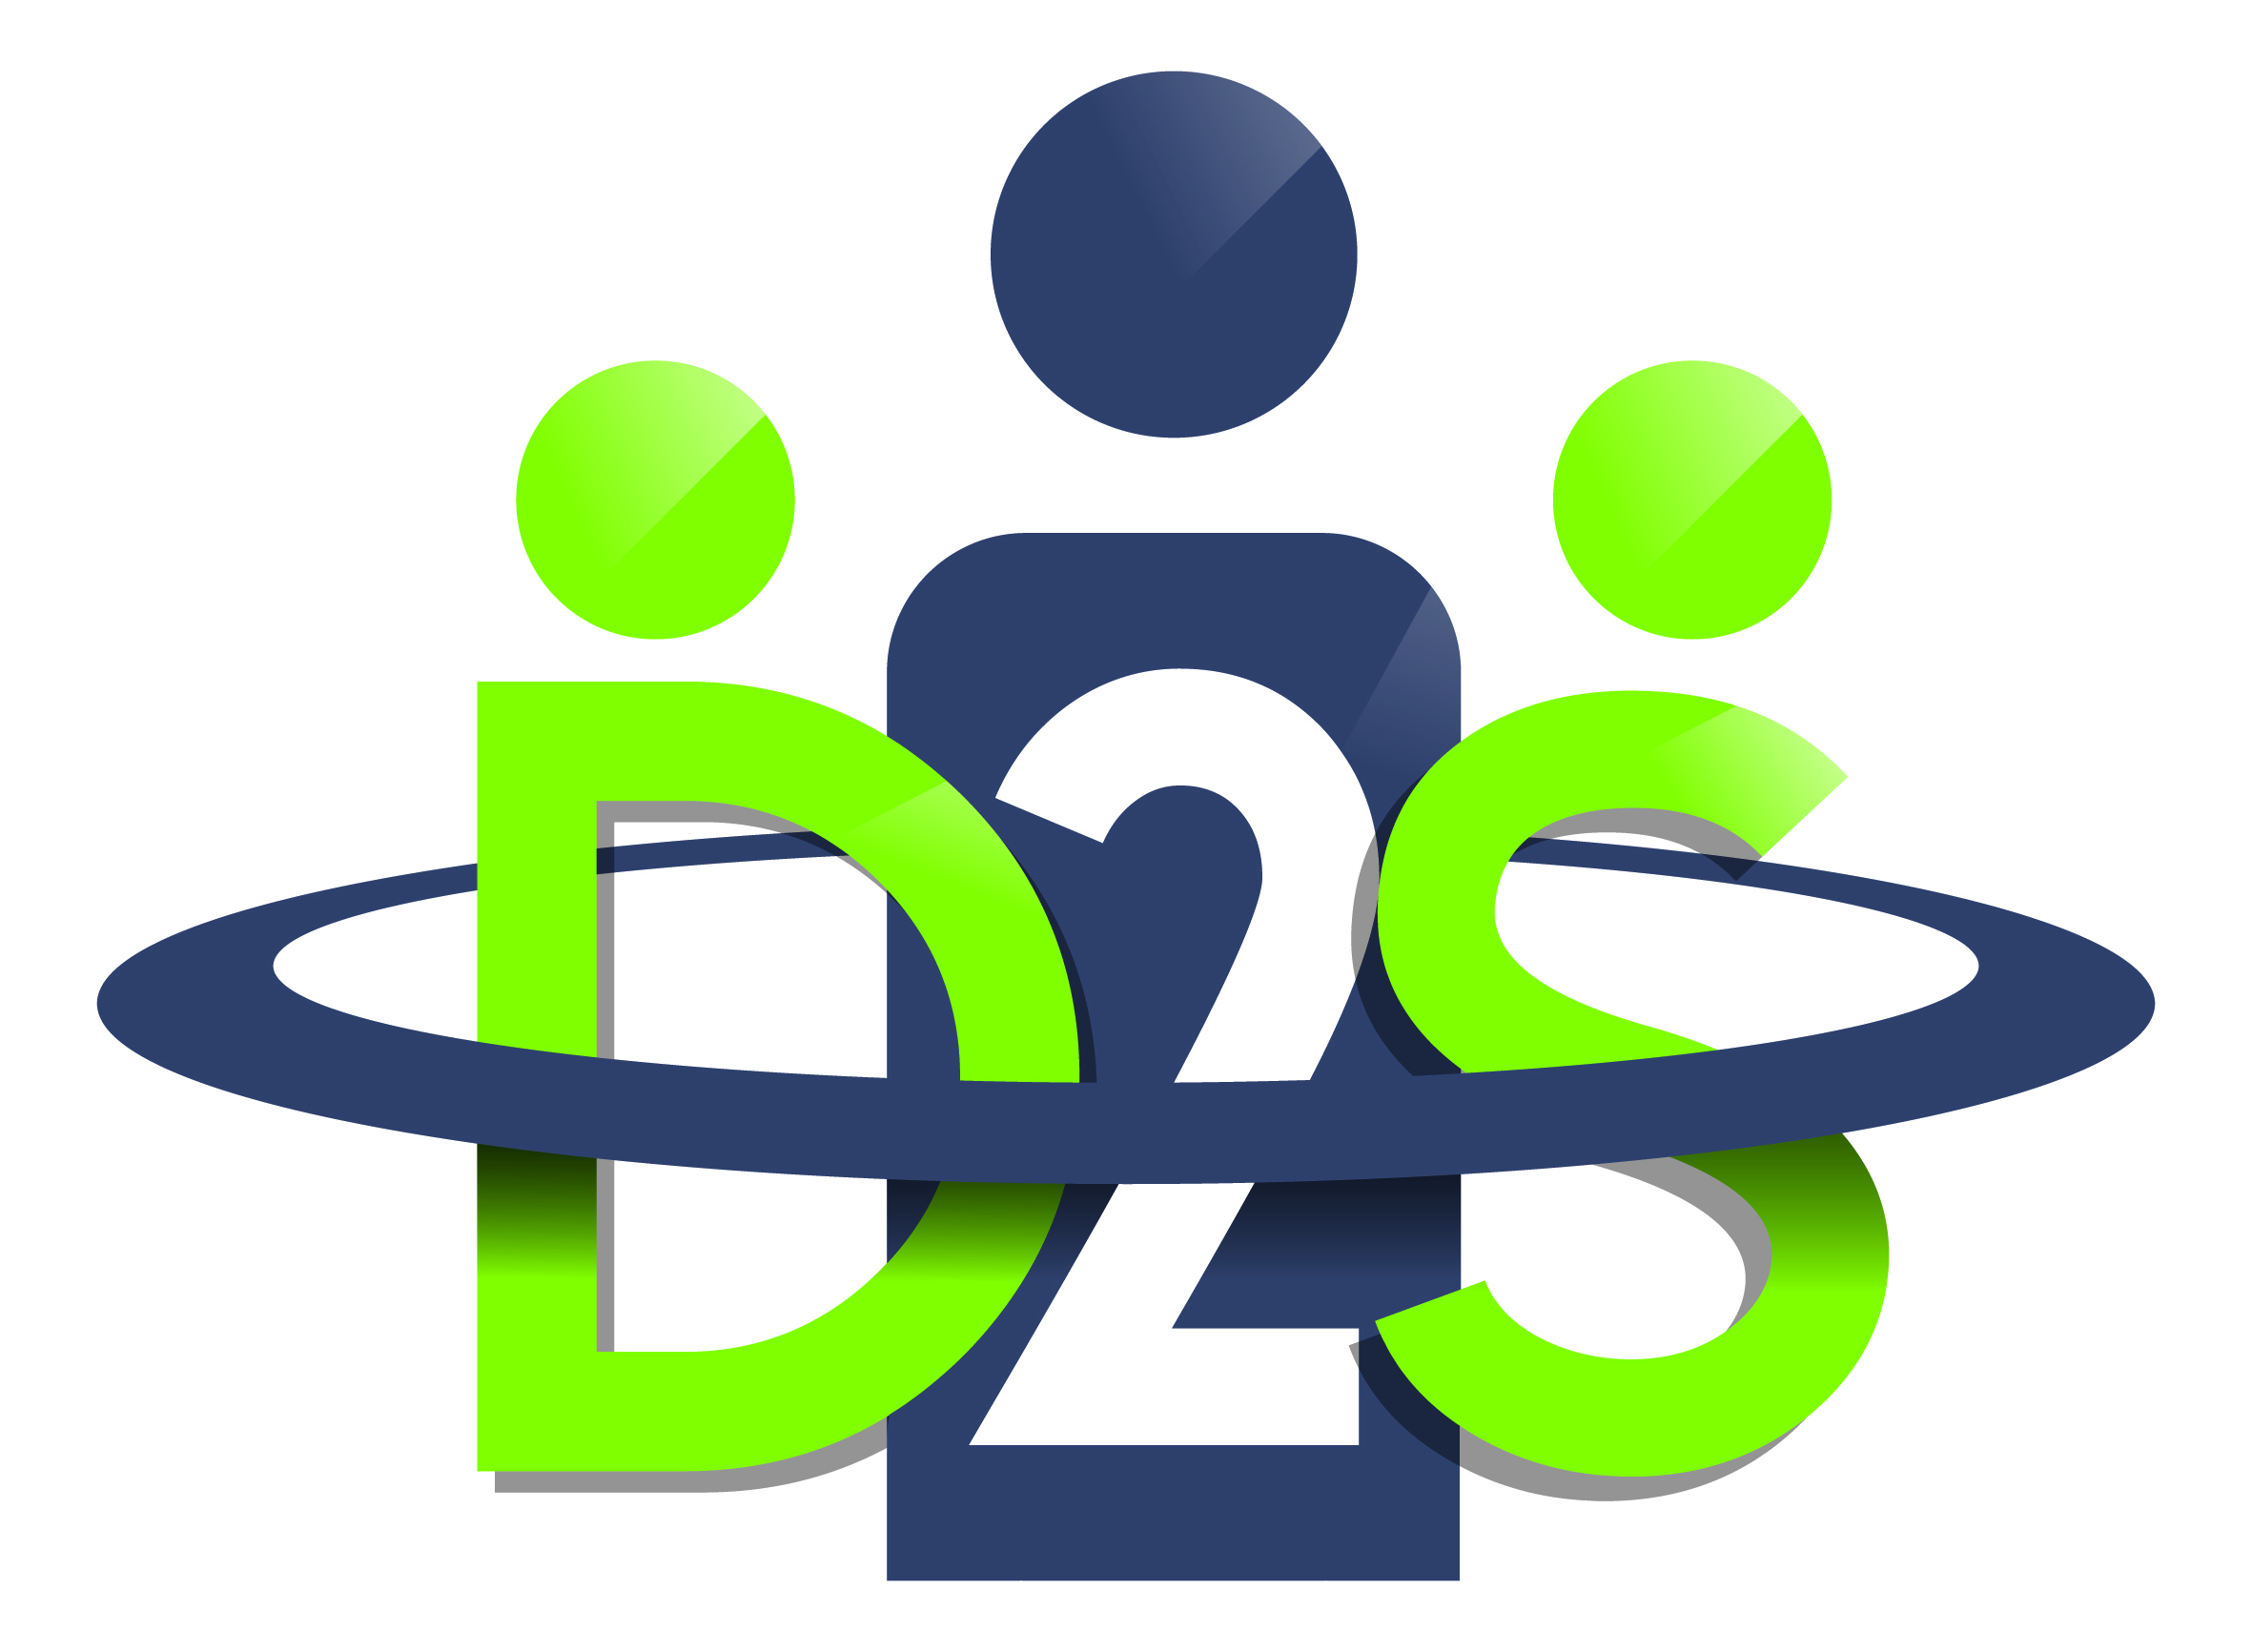 d2s initiatives - Dompierre-sur-mer & Sainte-soulle